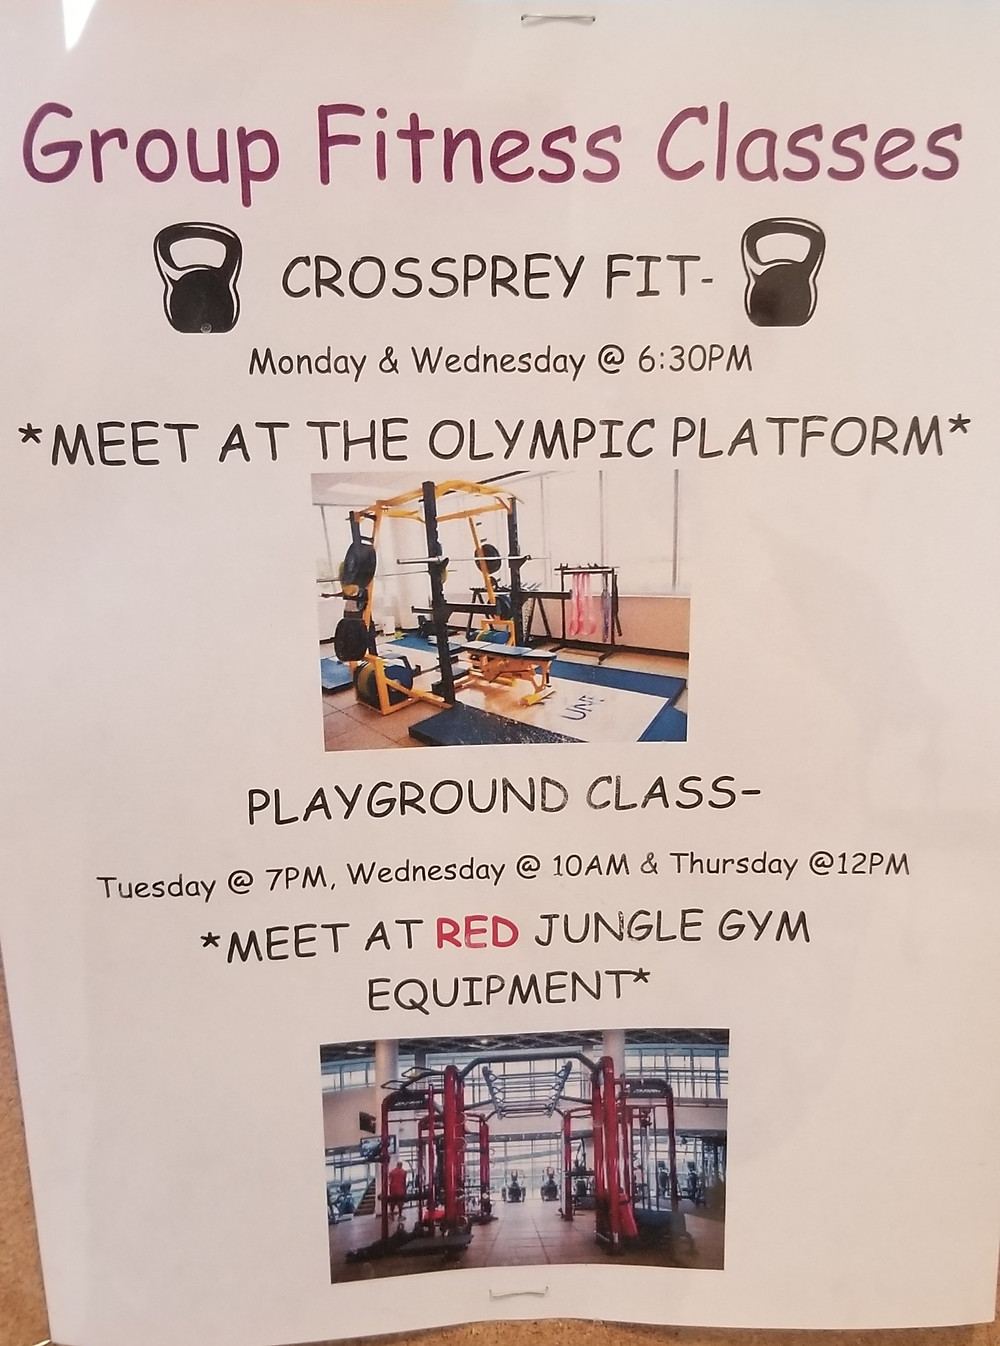 A group fitness classes poster.